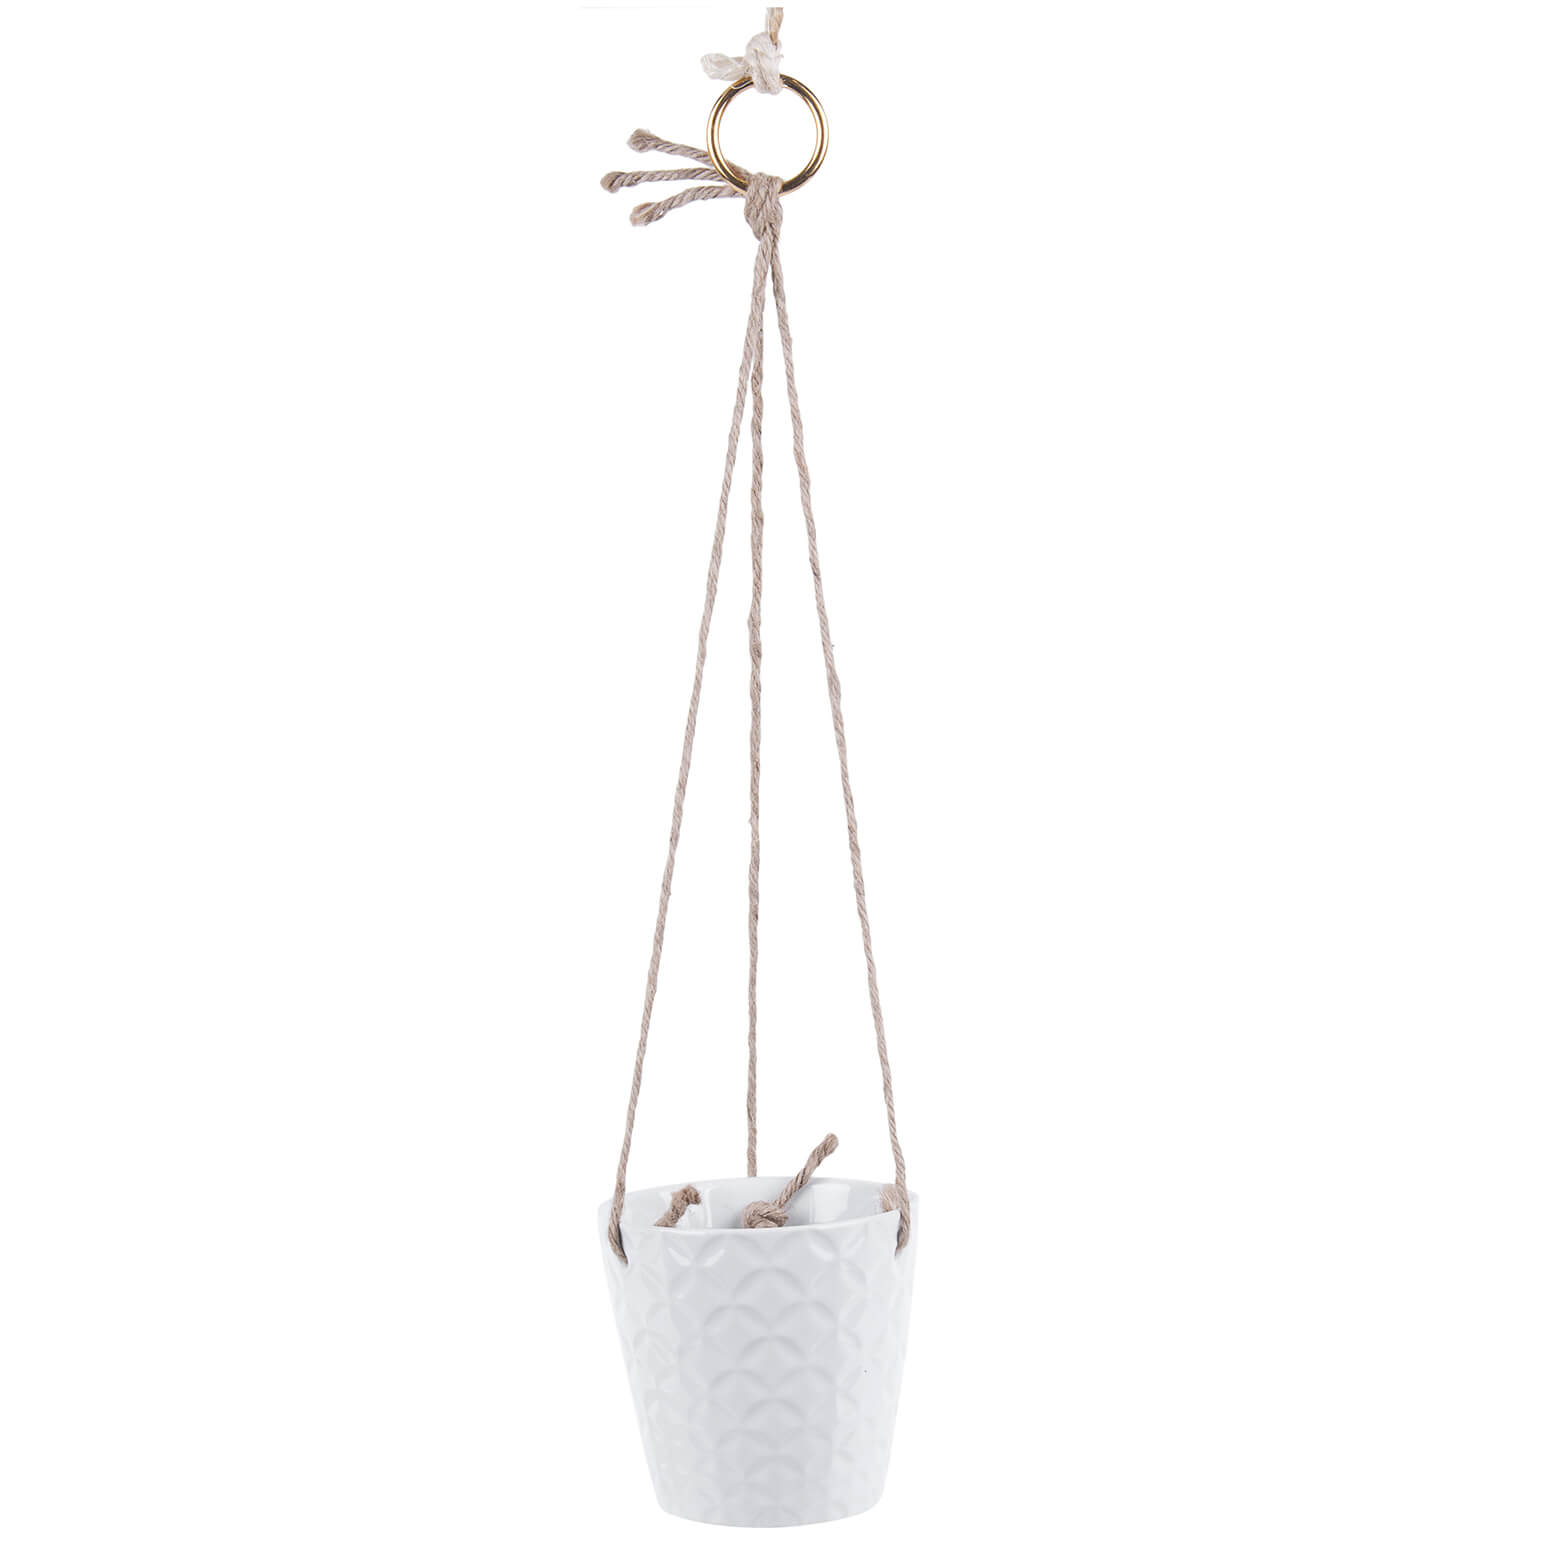 Present Time Hew Ceramic Hanging Pot - White